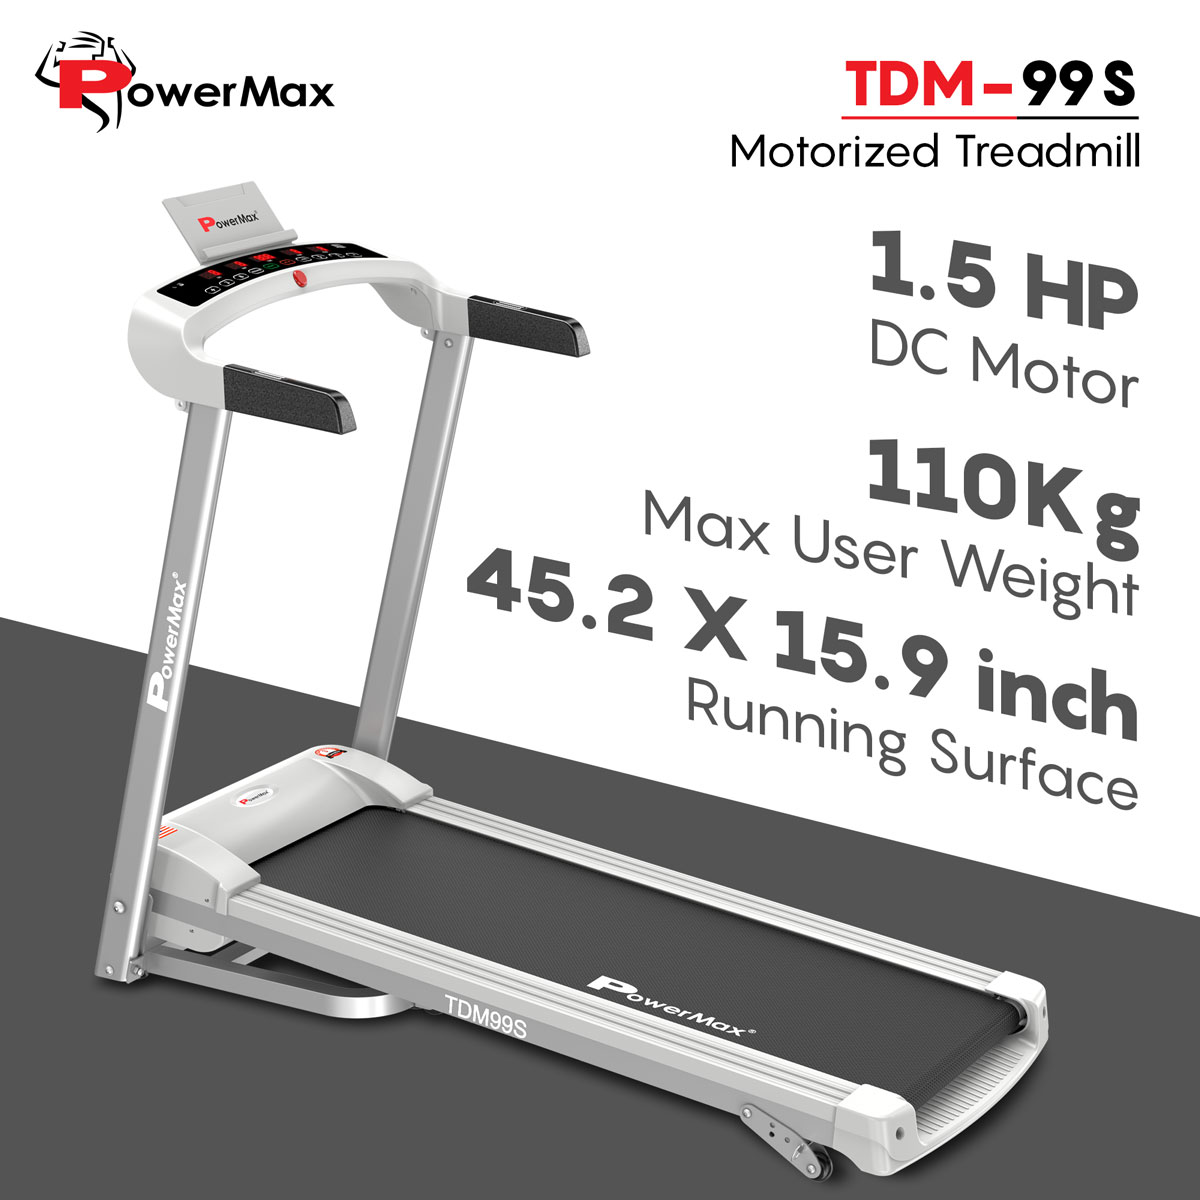 TDM-99S DC Motorized Treadmill